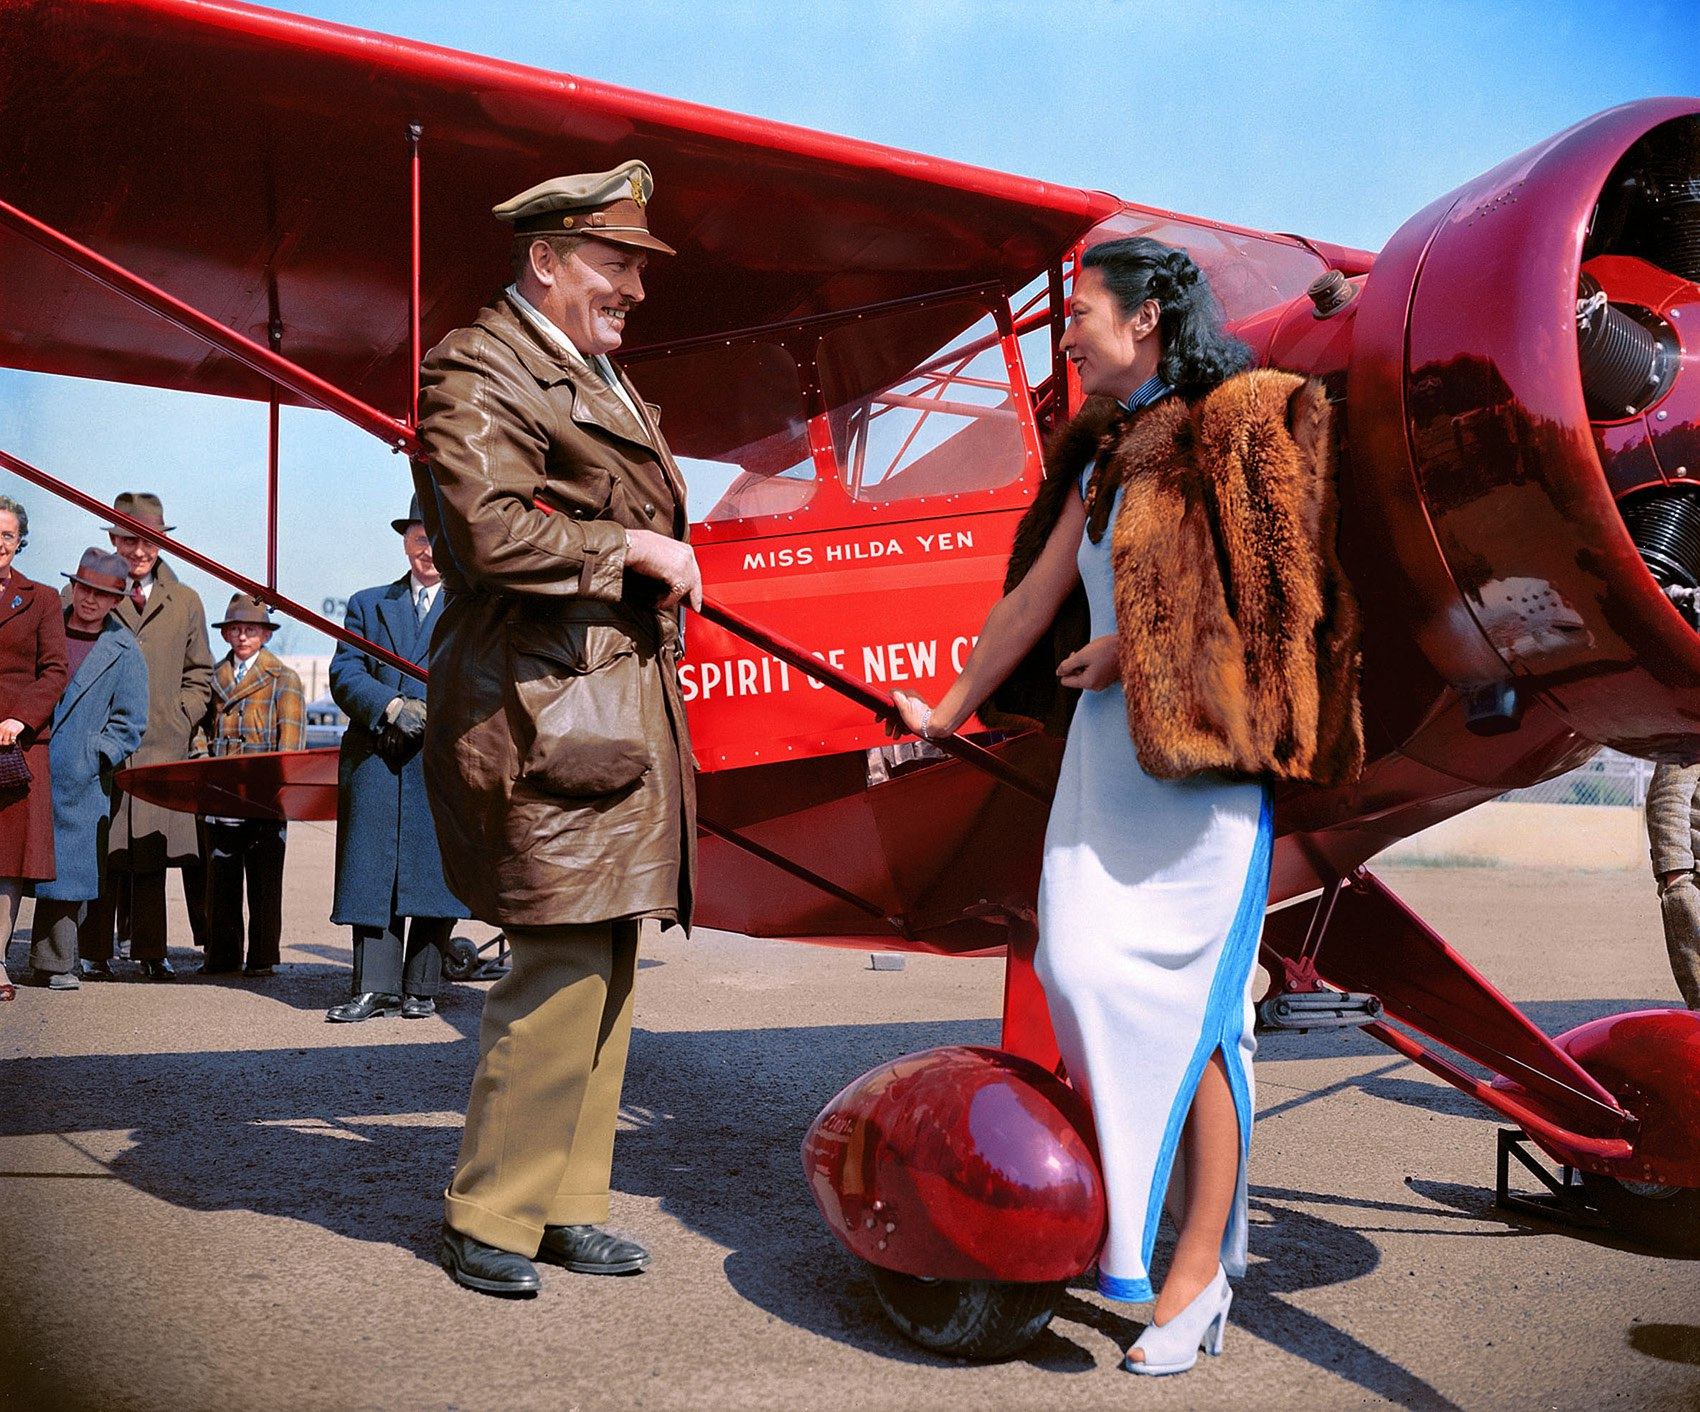 Miss Hilda Yen, Chinese Aviatrix, Washington, D.C. '1939